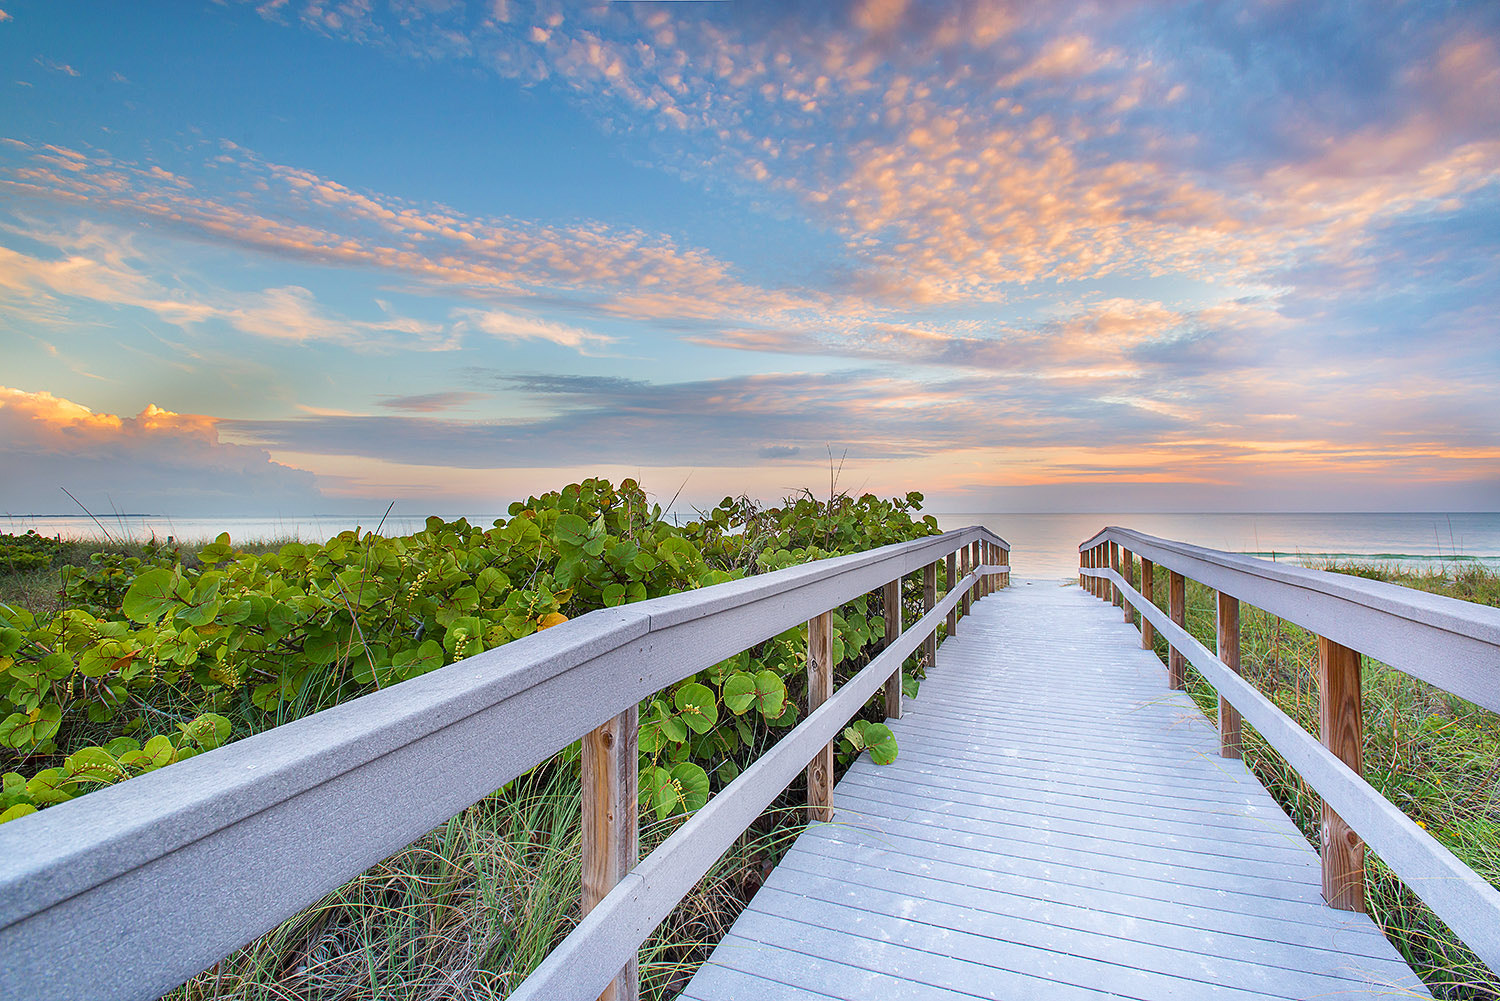 Photograph The Walk to Sunset Beach by Andrew Vernon on 500px